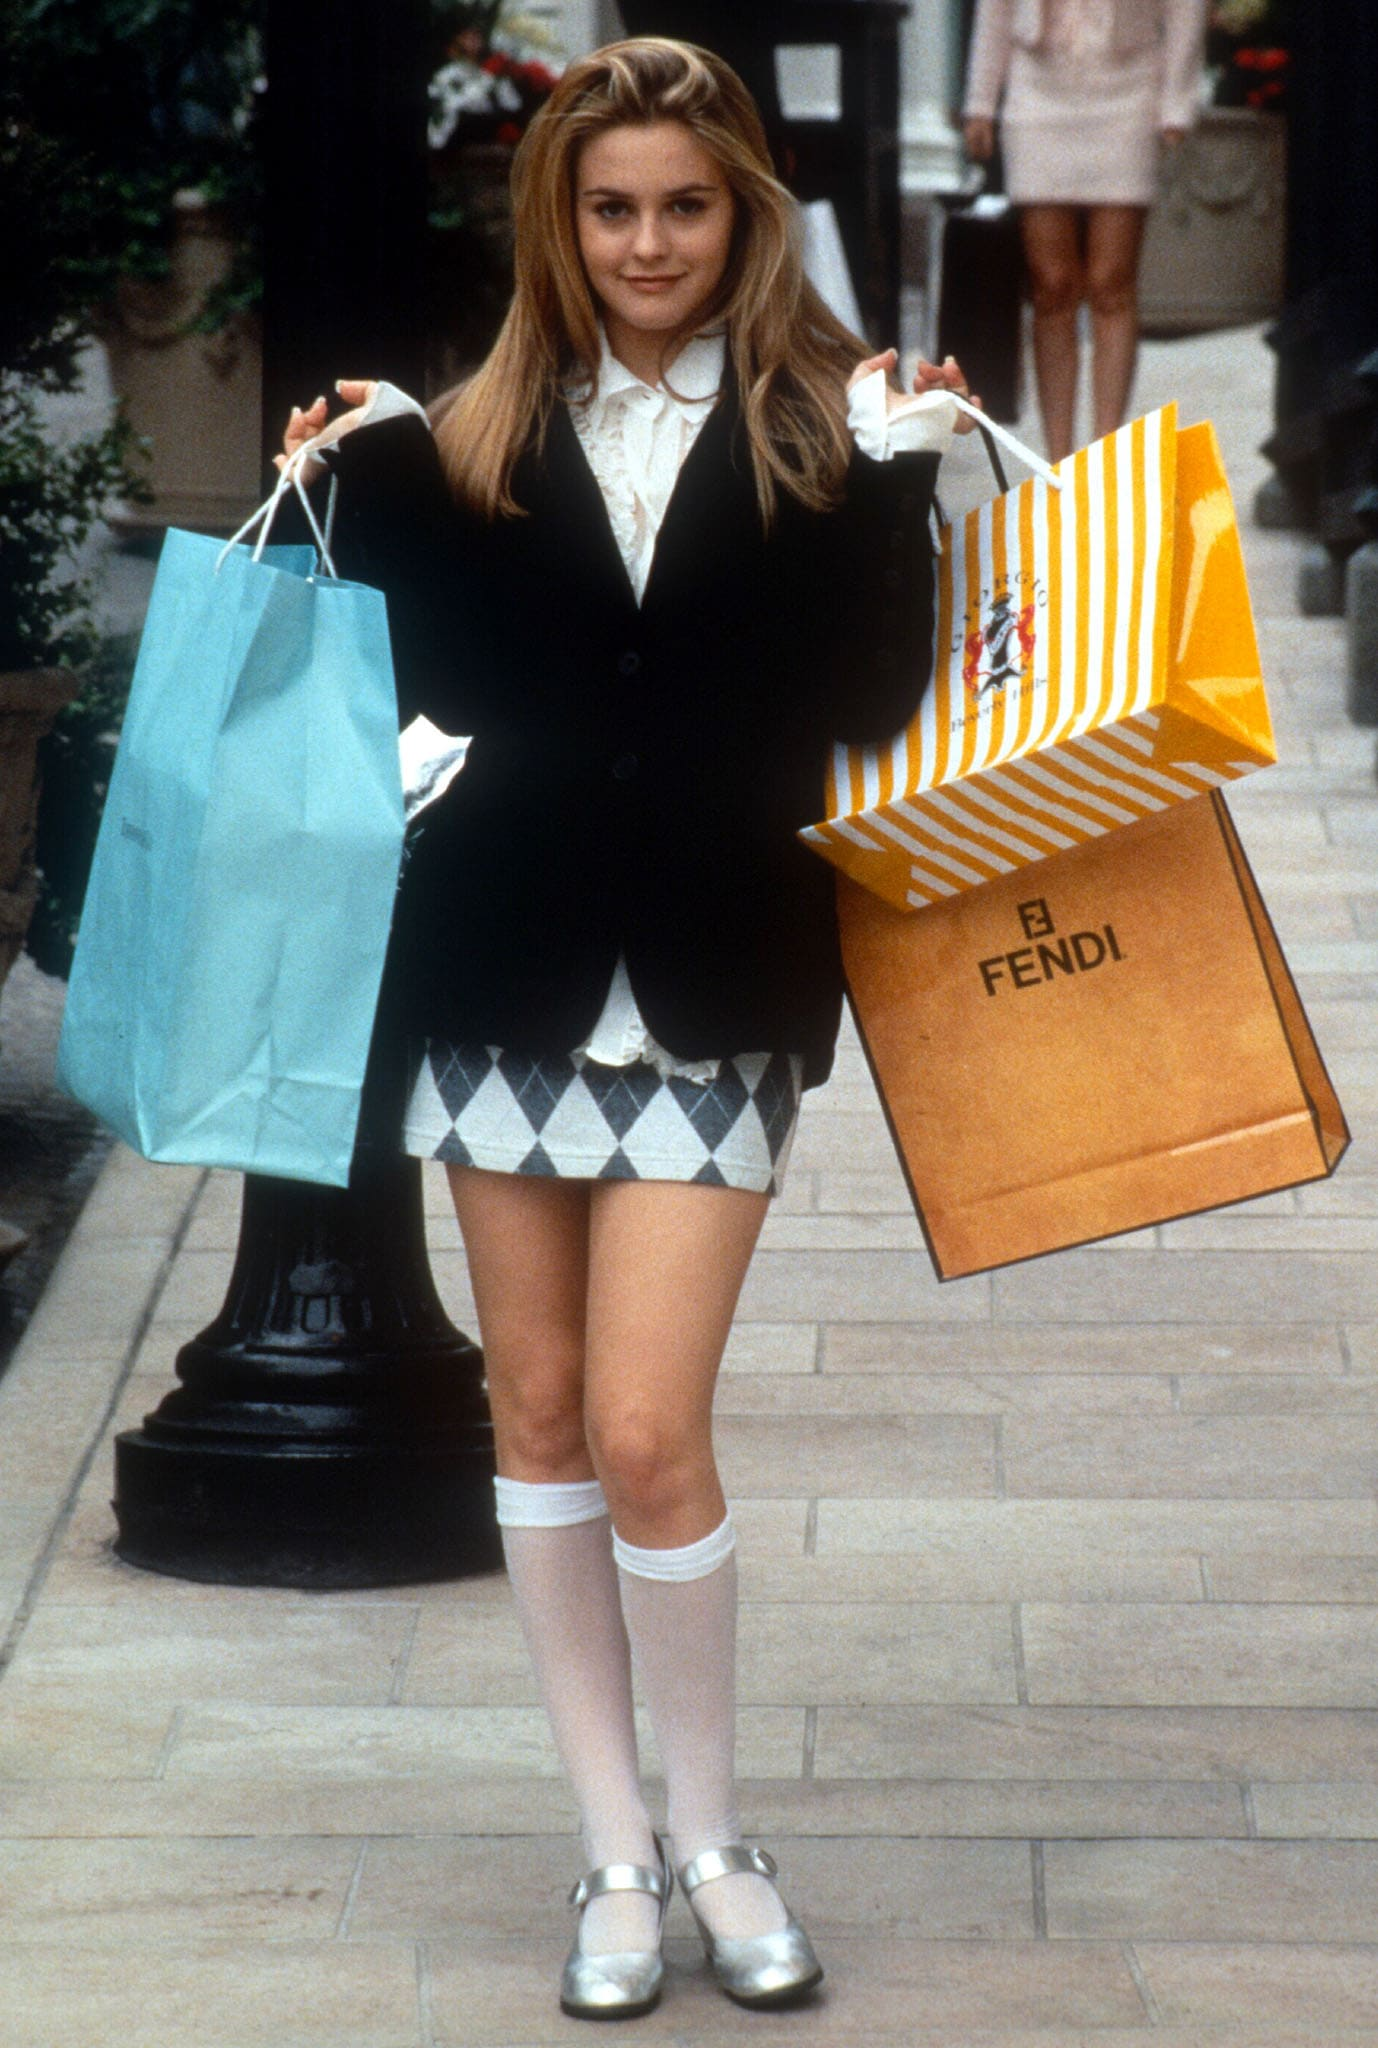 Alicia Silverstone wearing Mary Jane shoes with knee-high socks on the set of the 1995 movie Clueless